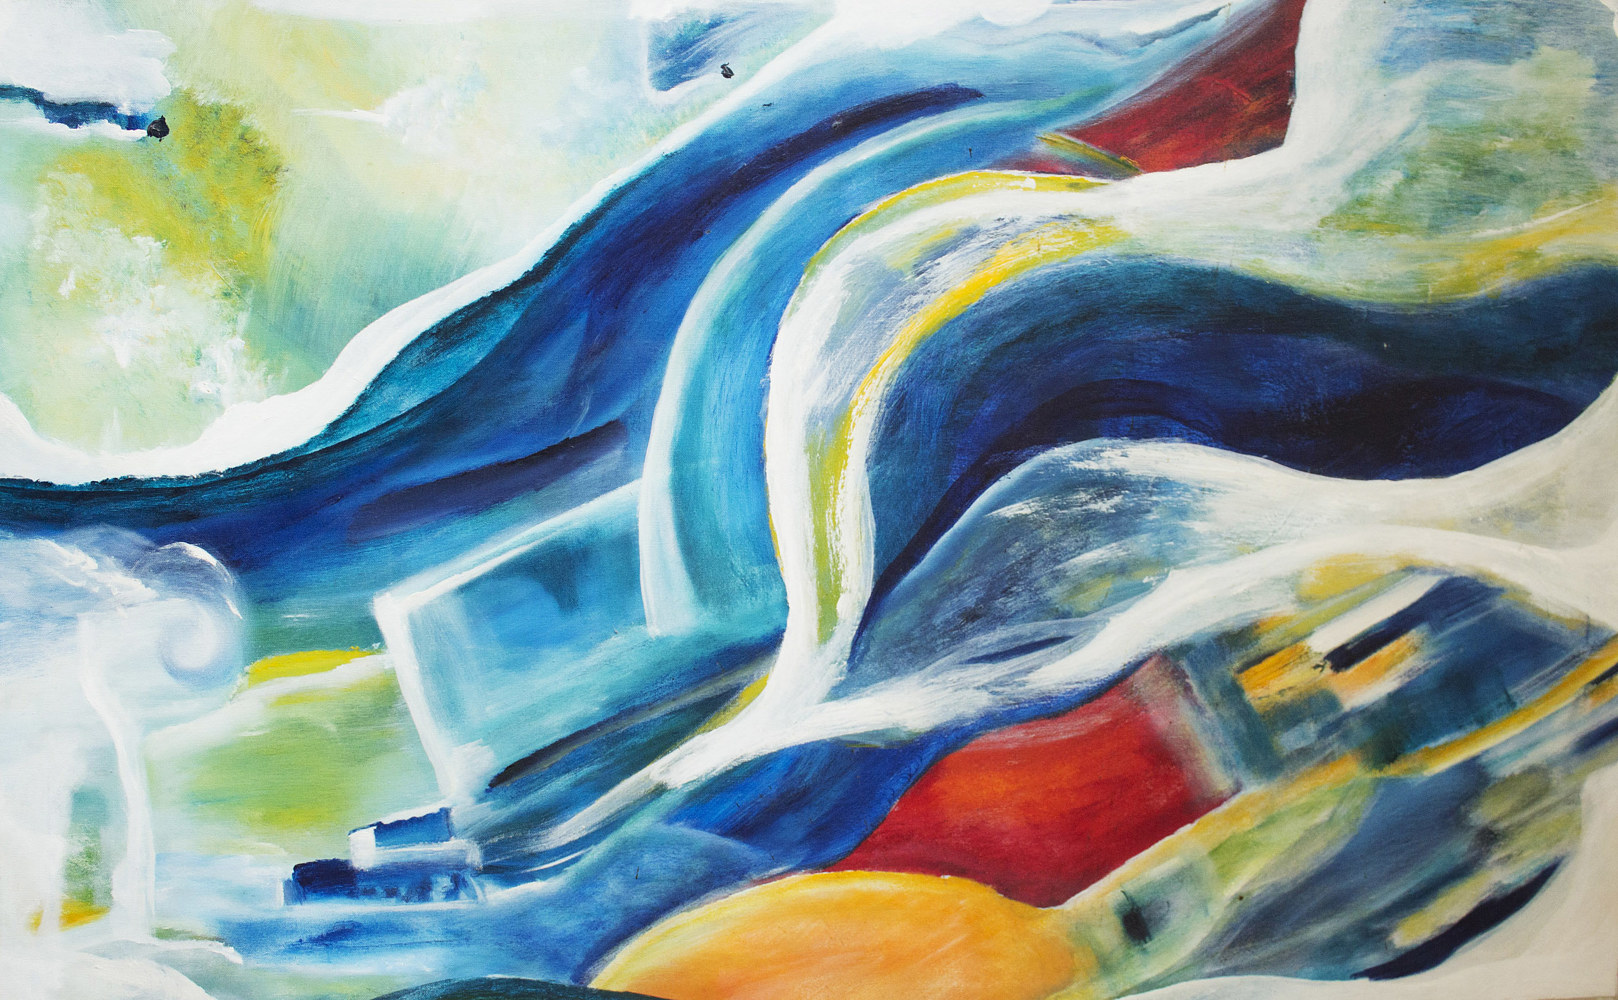 Acrylic painting Singing Waves | Vagues Chantantes by Nathalie Gribinski